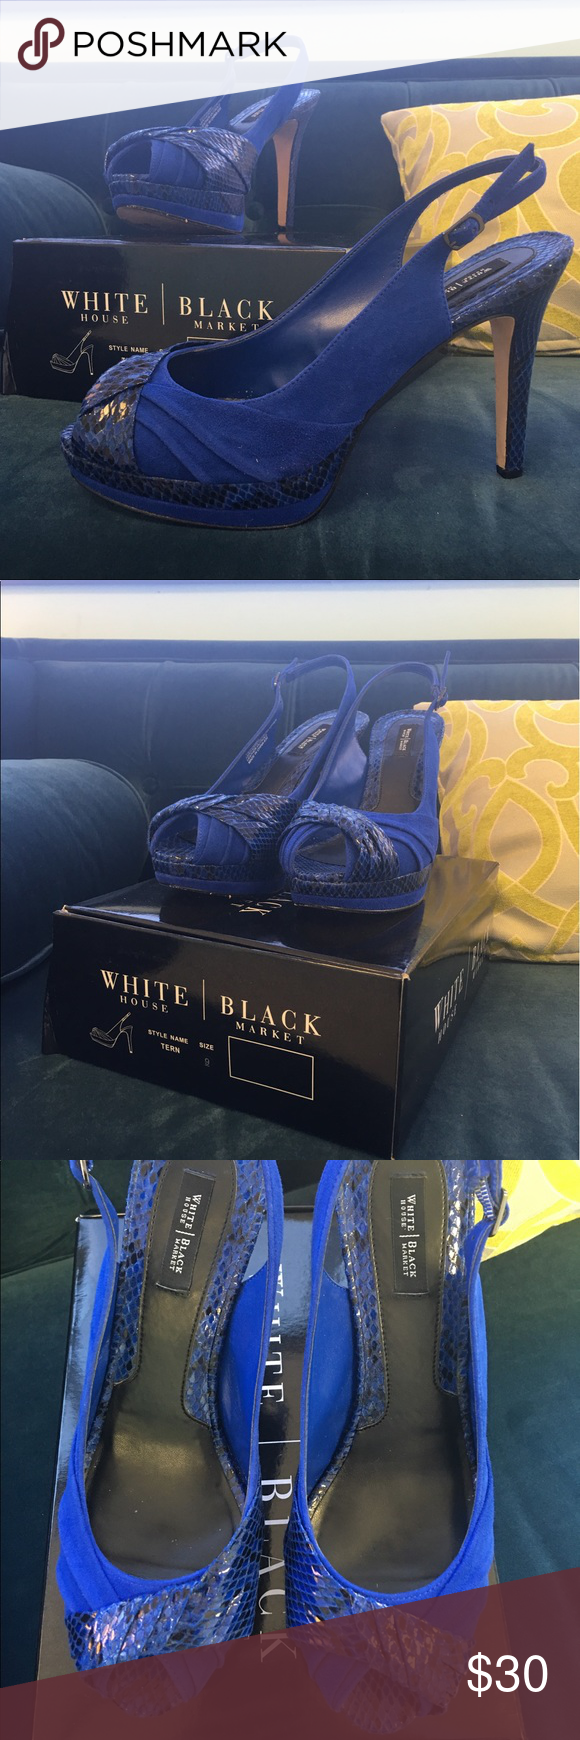 "White House Black Market ""Tern"" Slingback Heels White House Black Market ""Tern"" Slingback Heels in cobalt blue with box! Love these super trendy heels, they're perfect for a night out on the town! Dress them up with a cocktail dress, or dress them down with your favorite pair of jeans. They've seen some wear, but they're in excellent condition! 💙 White House Black Market Shoes Heels"